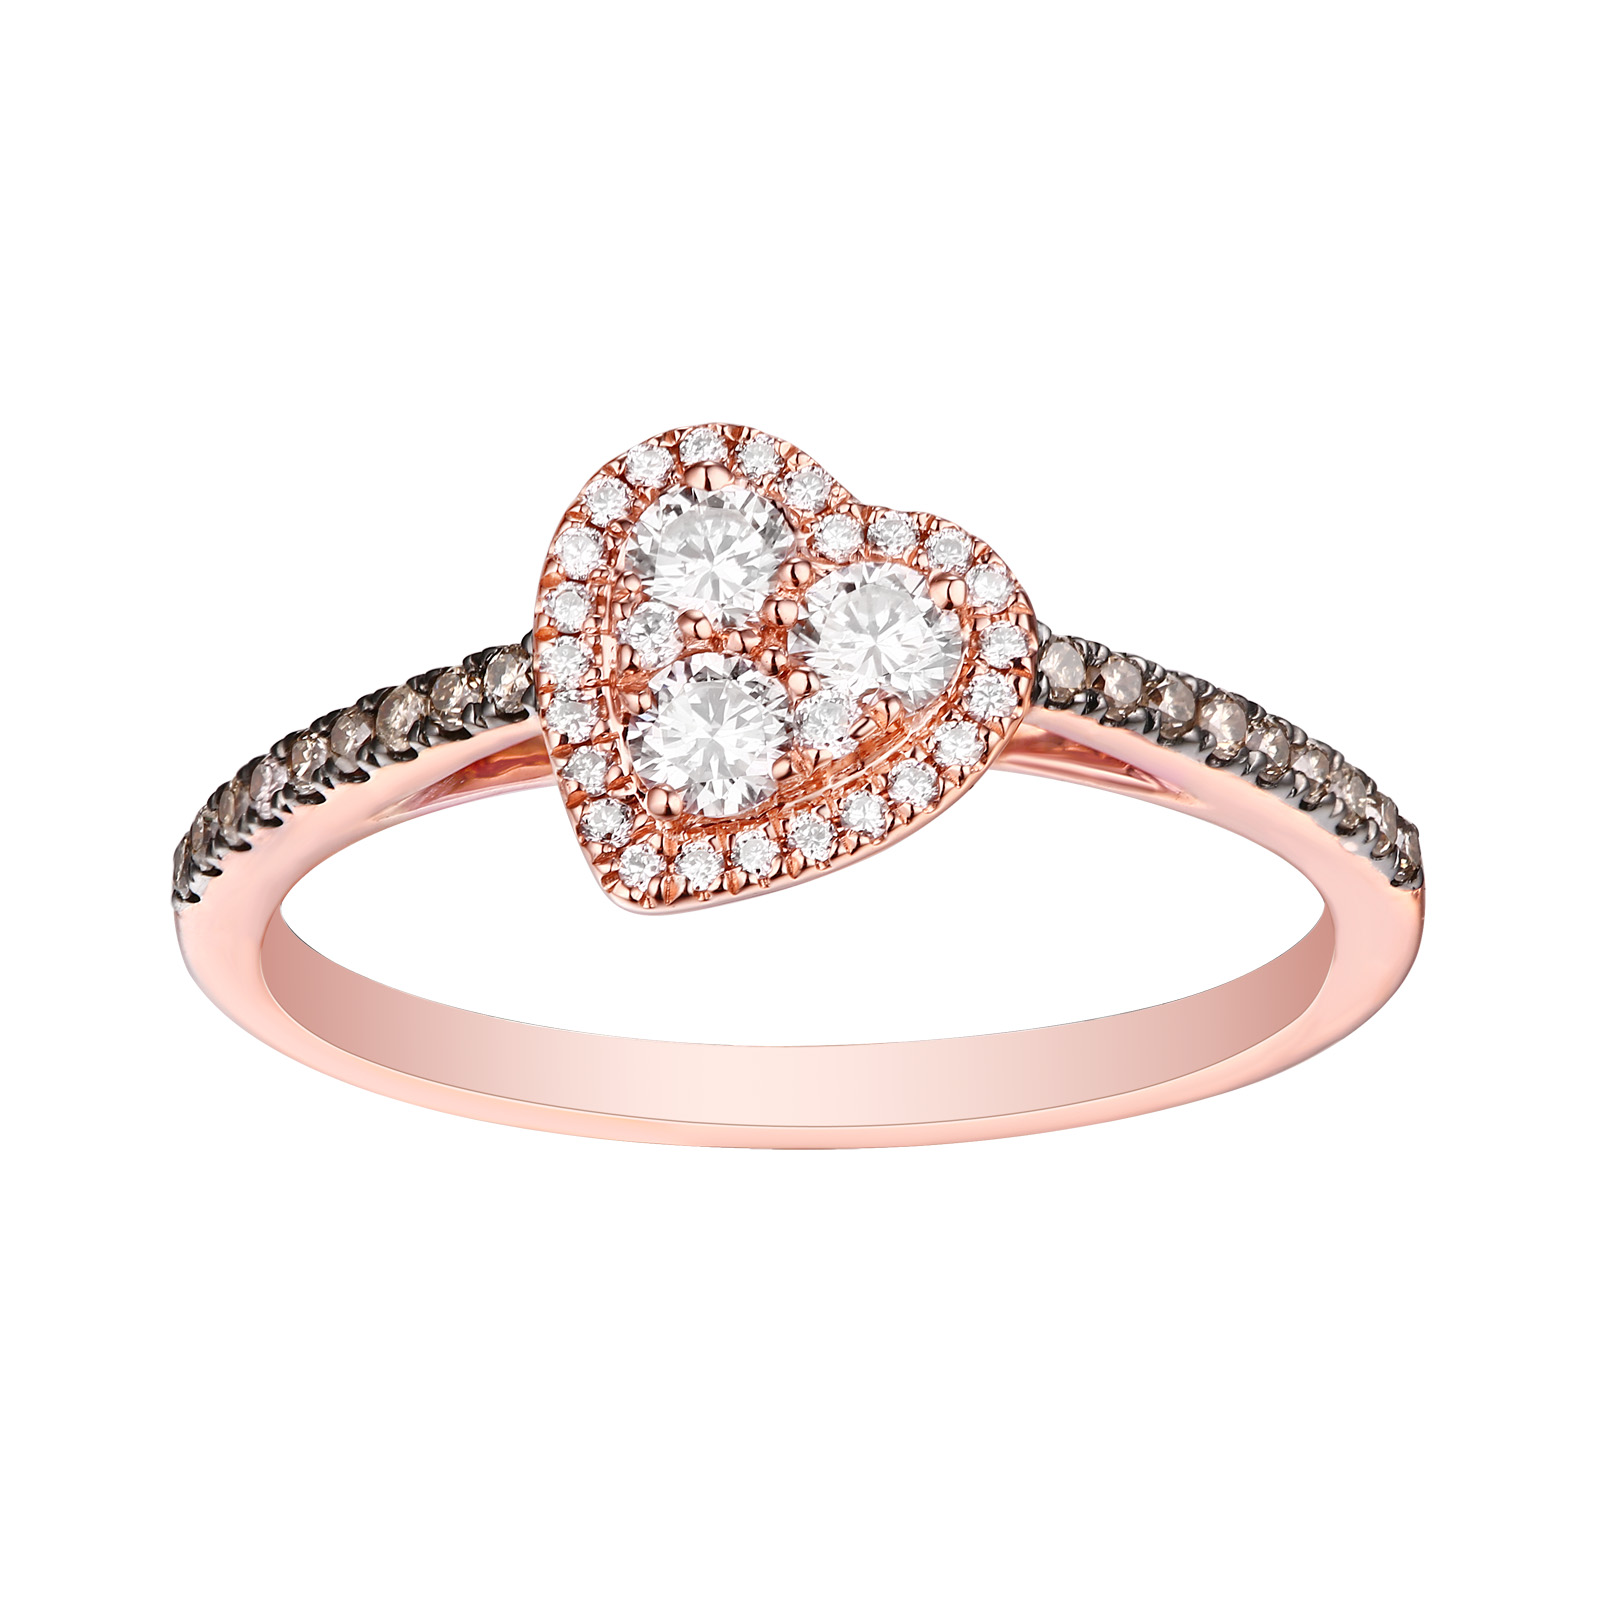 R25919WBR- 14K Rose Gold Diamond Ring, 0.44 TCW